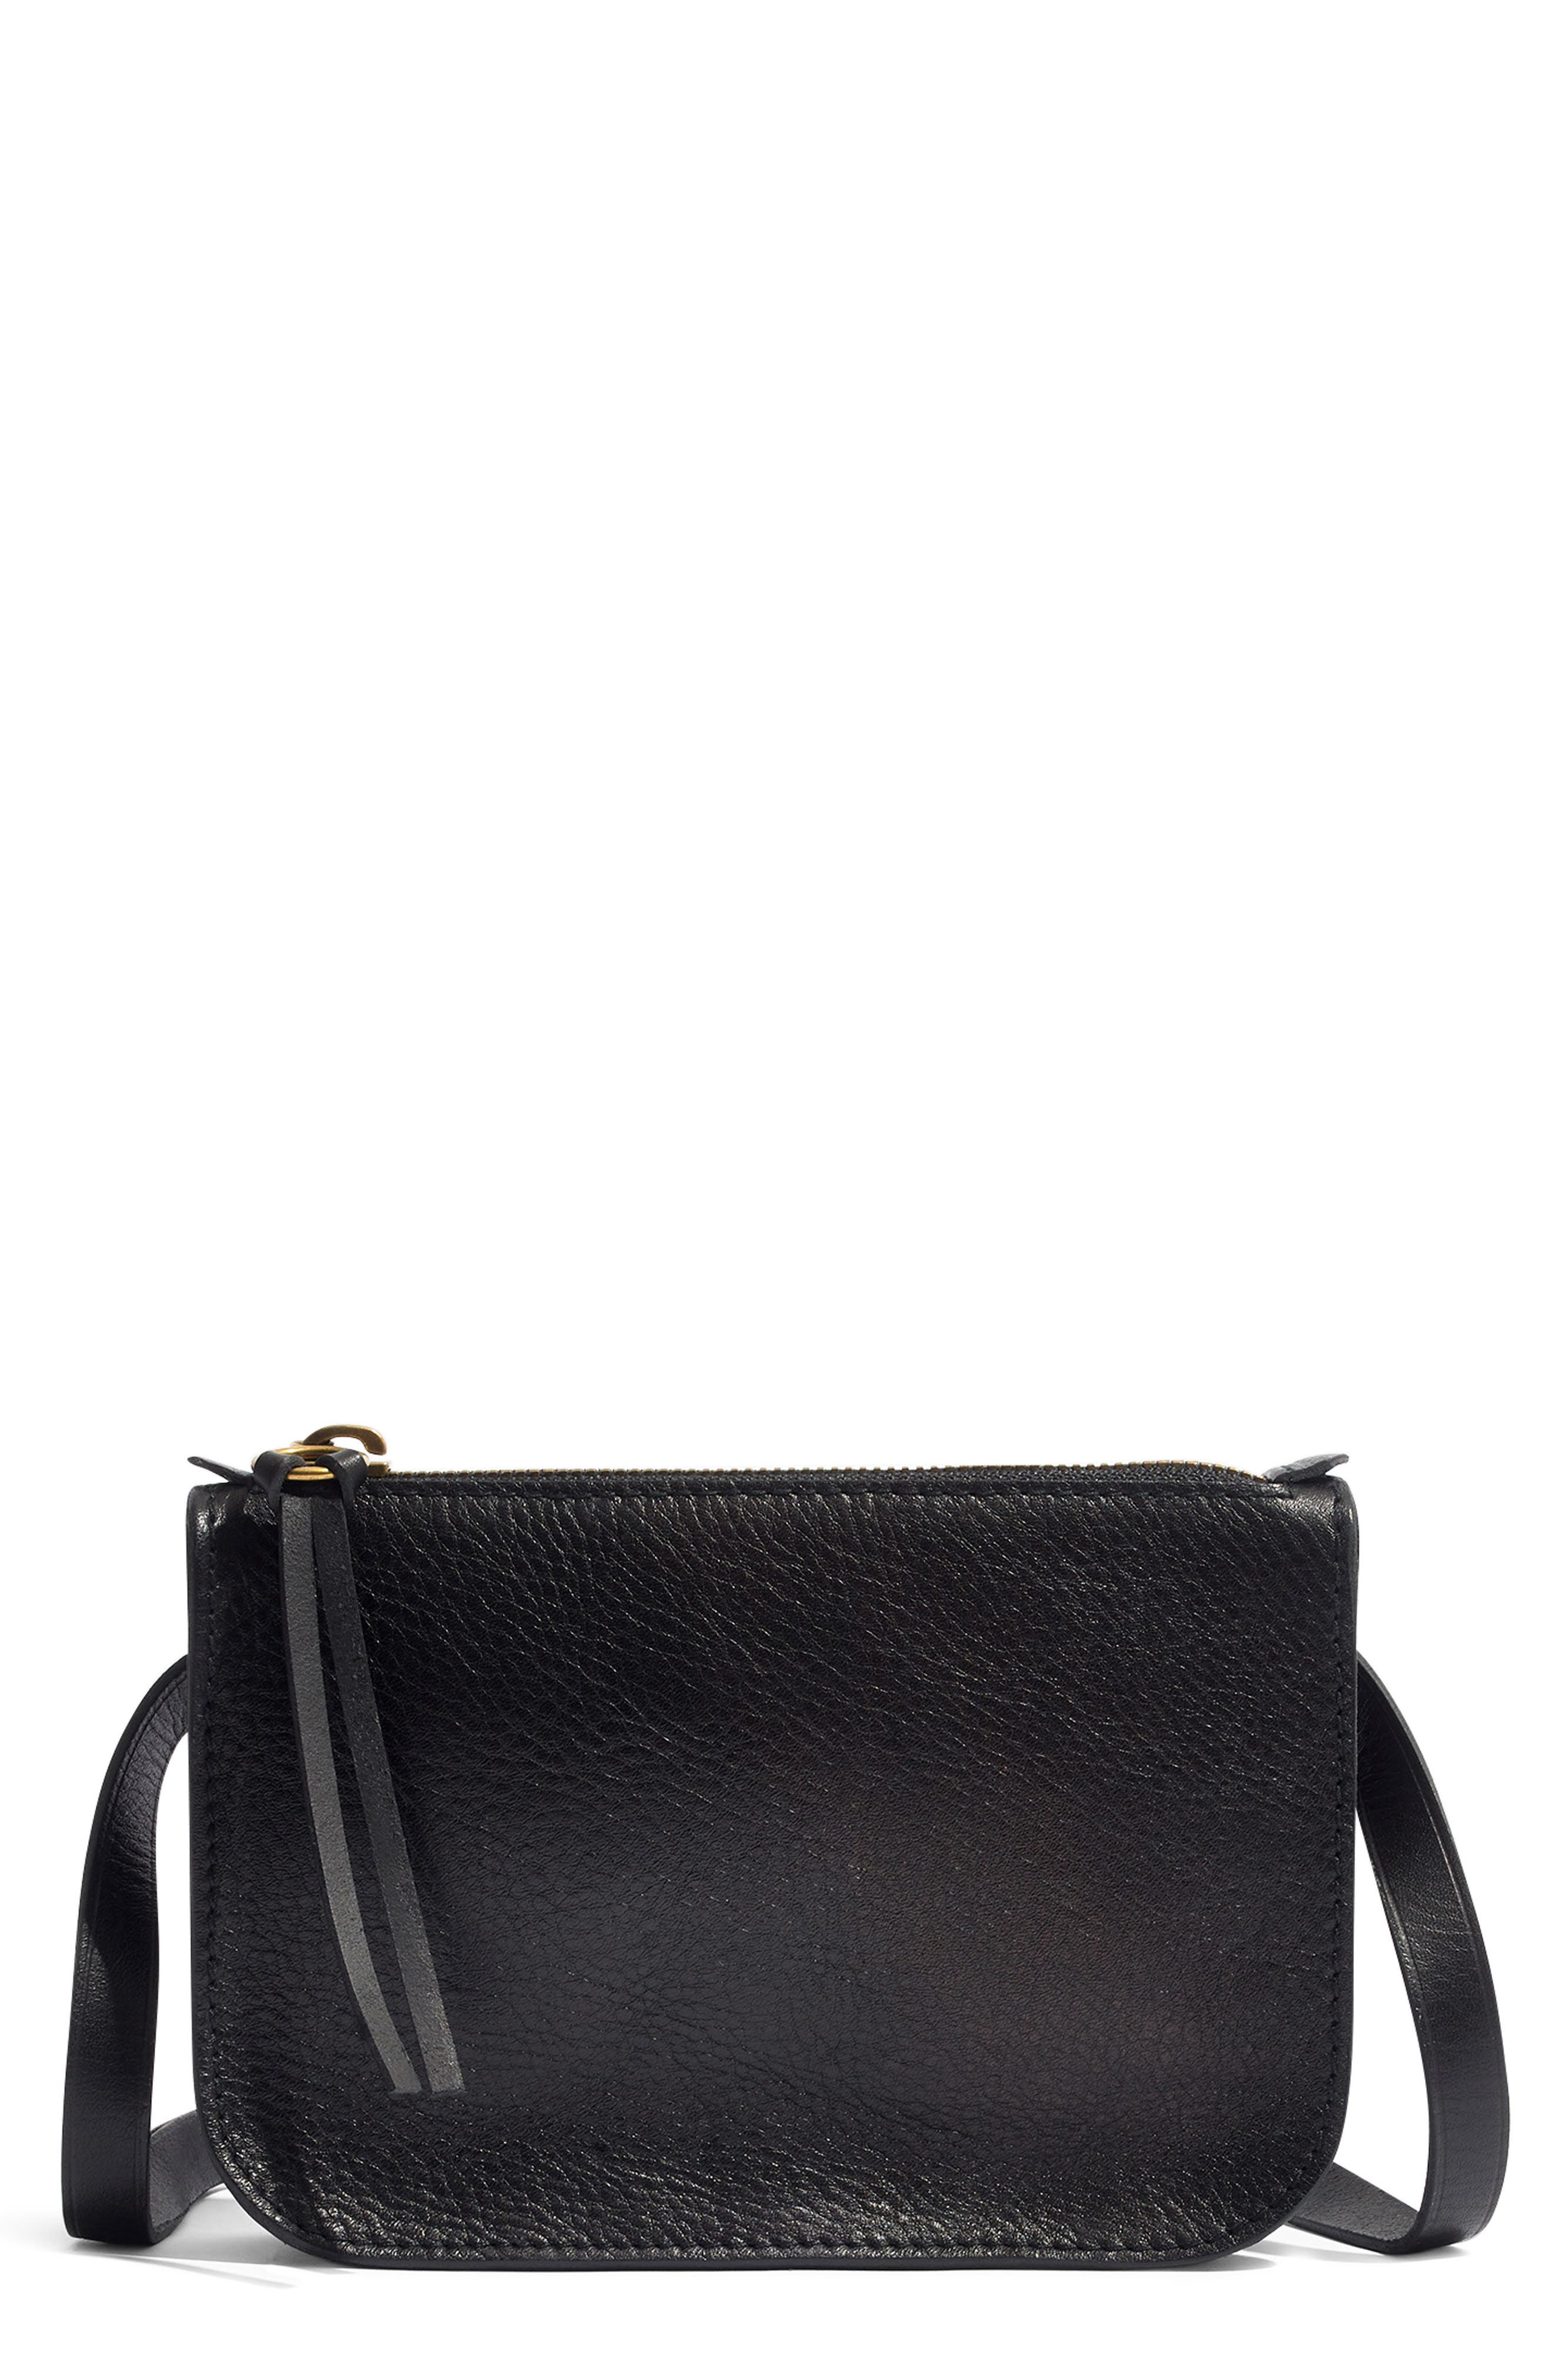 MADEWELL, The Simple Pouch Belt Bag, Main thumbnail 1, color, TRUE BLACK